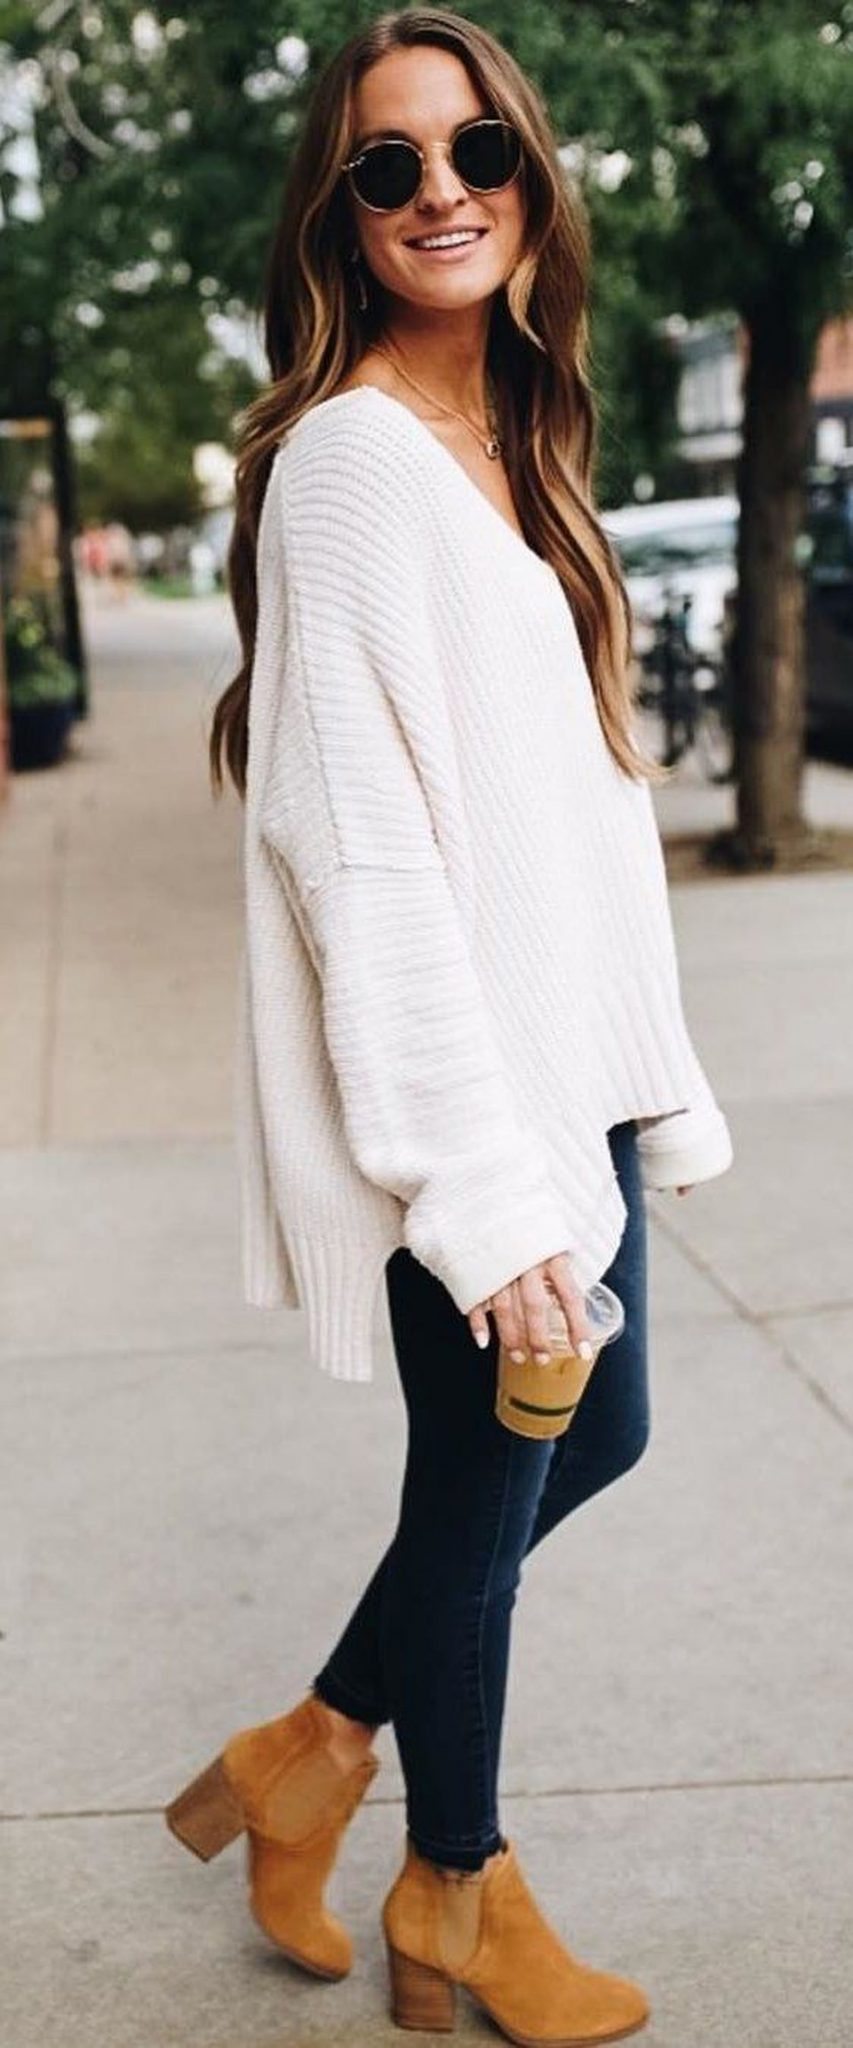 Fashionable oversized sweater for winter outfit 13 - Fashion Best e5ad0bf0c